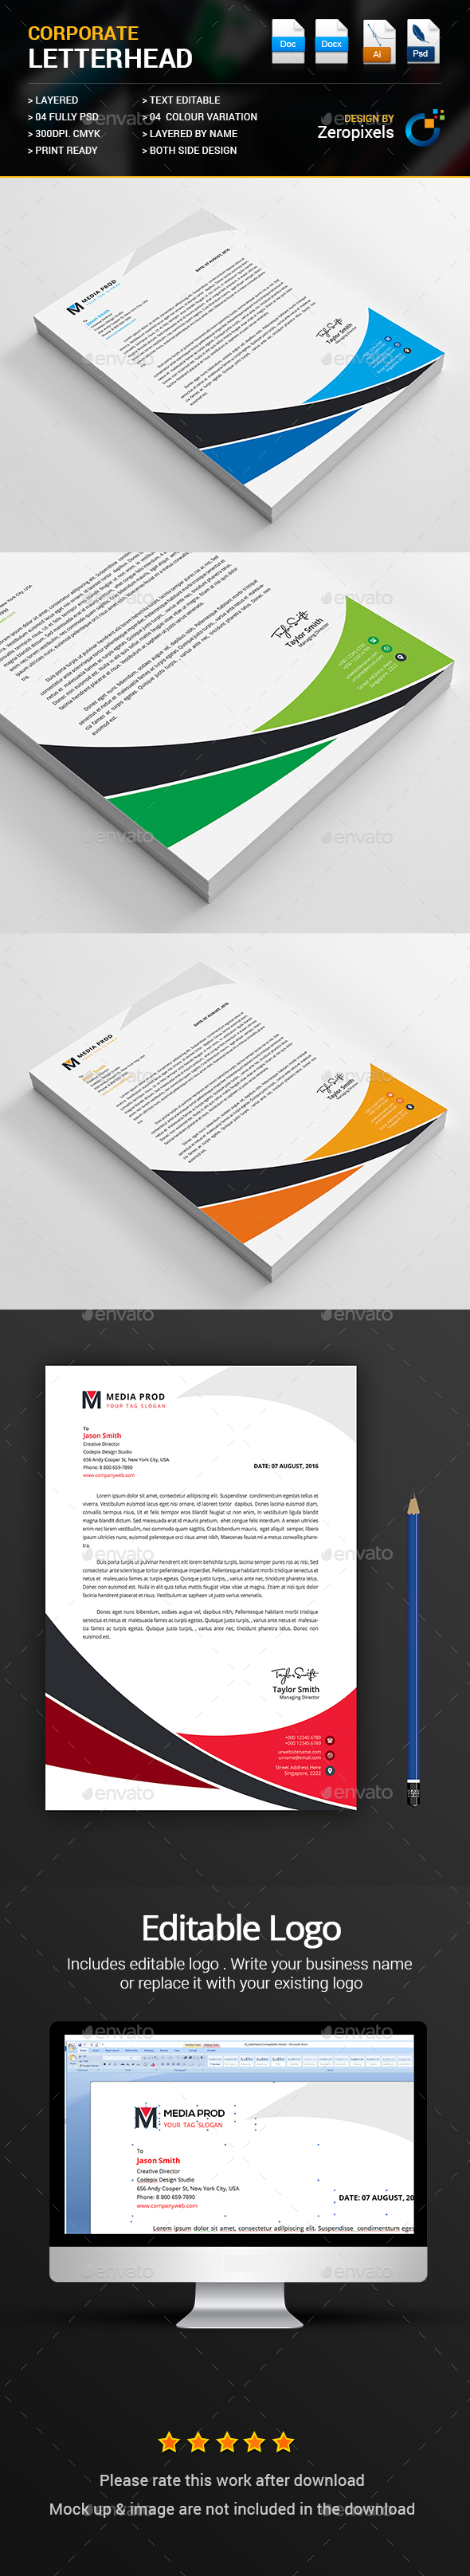 Business letterhead template psd vector eps ai ms word business letterhead template psd vector eps ai ms word spiritdancerdesigns